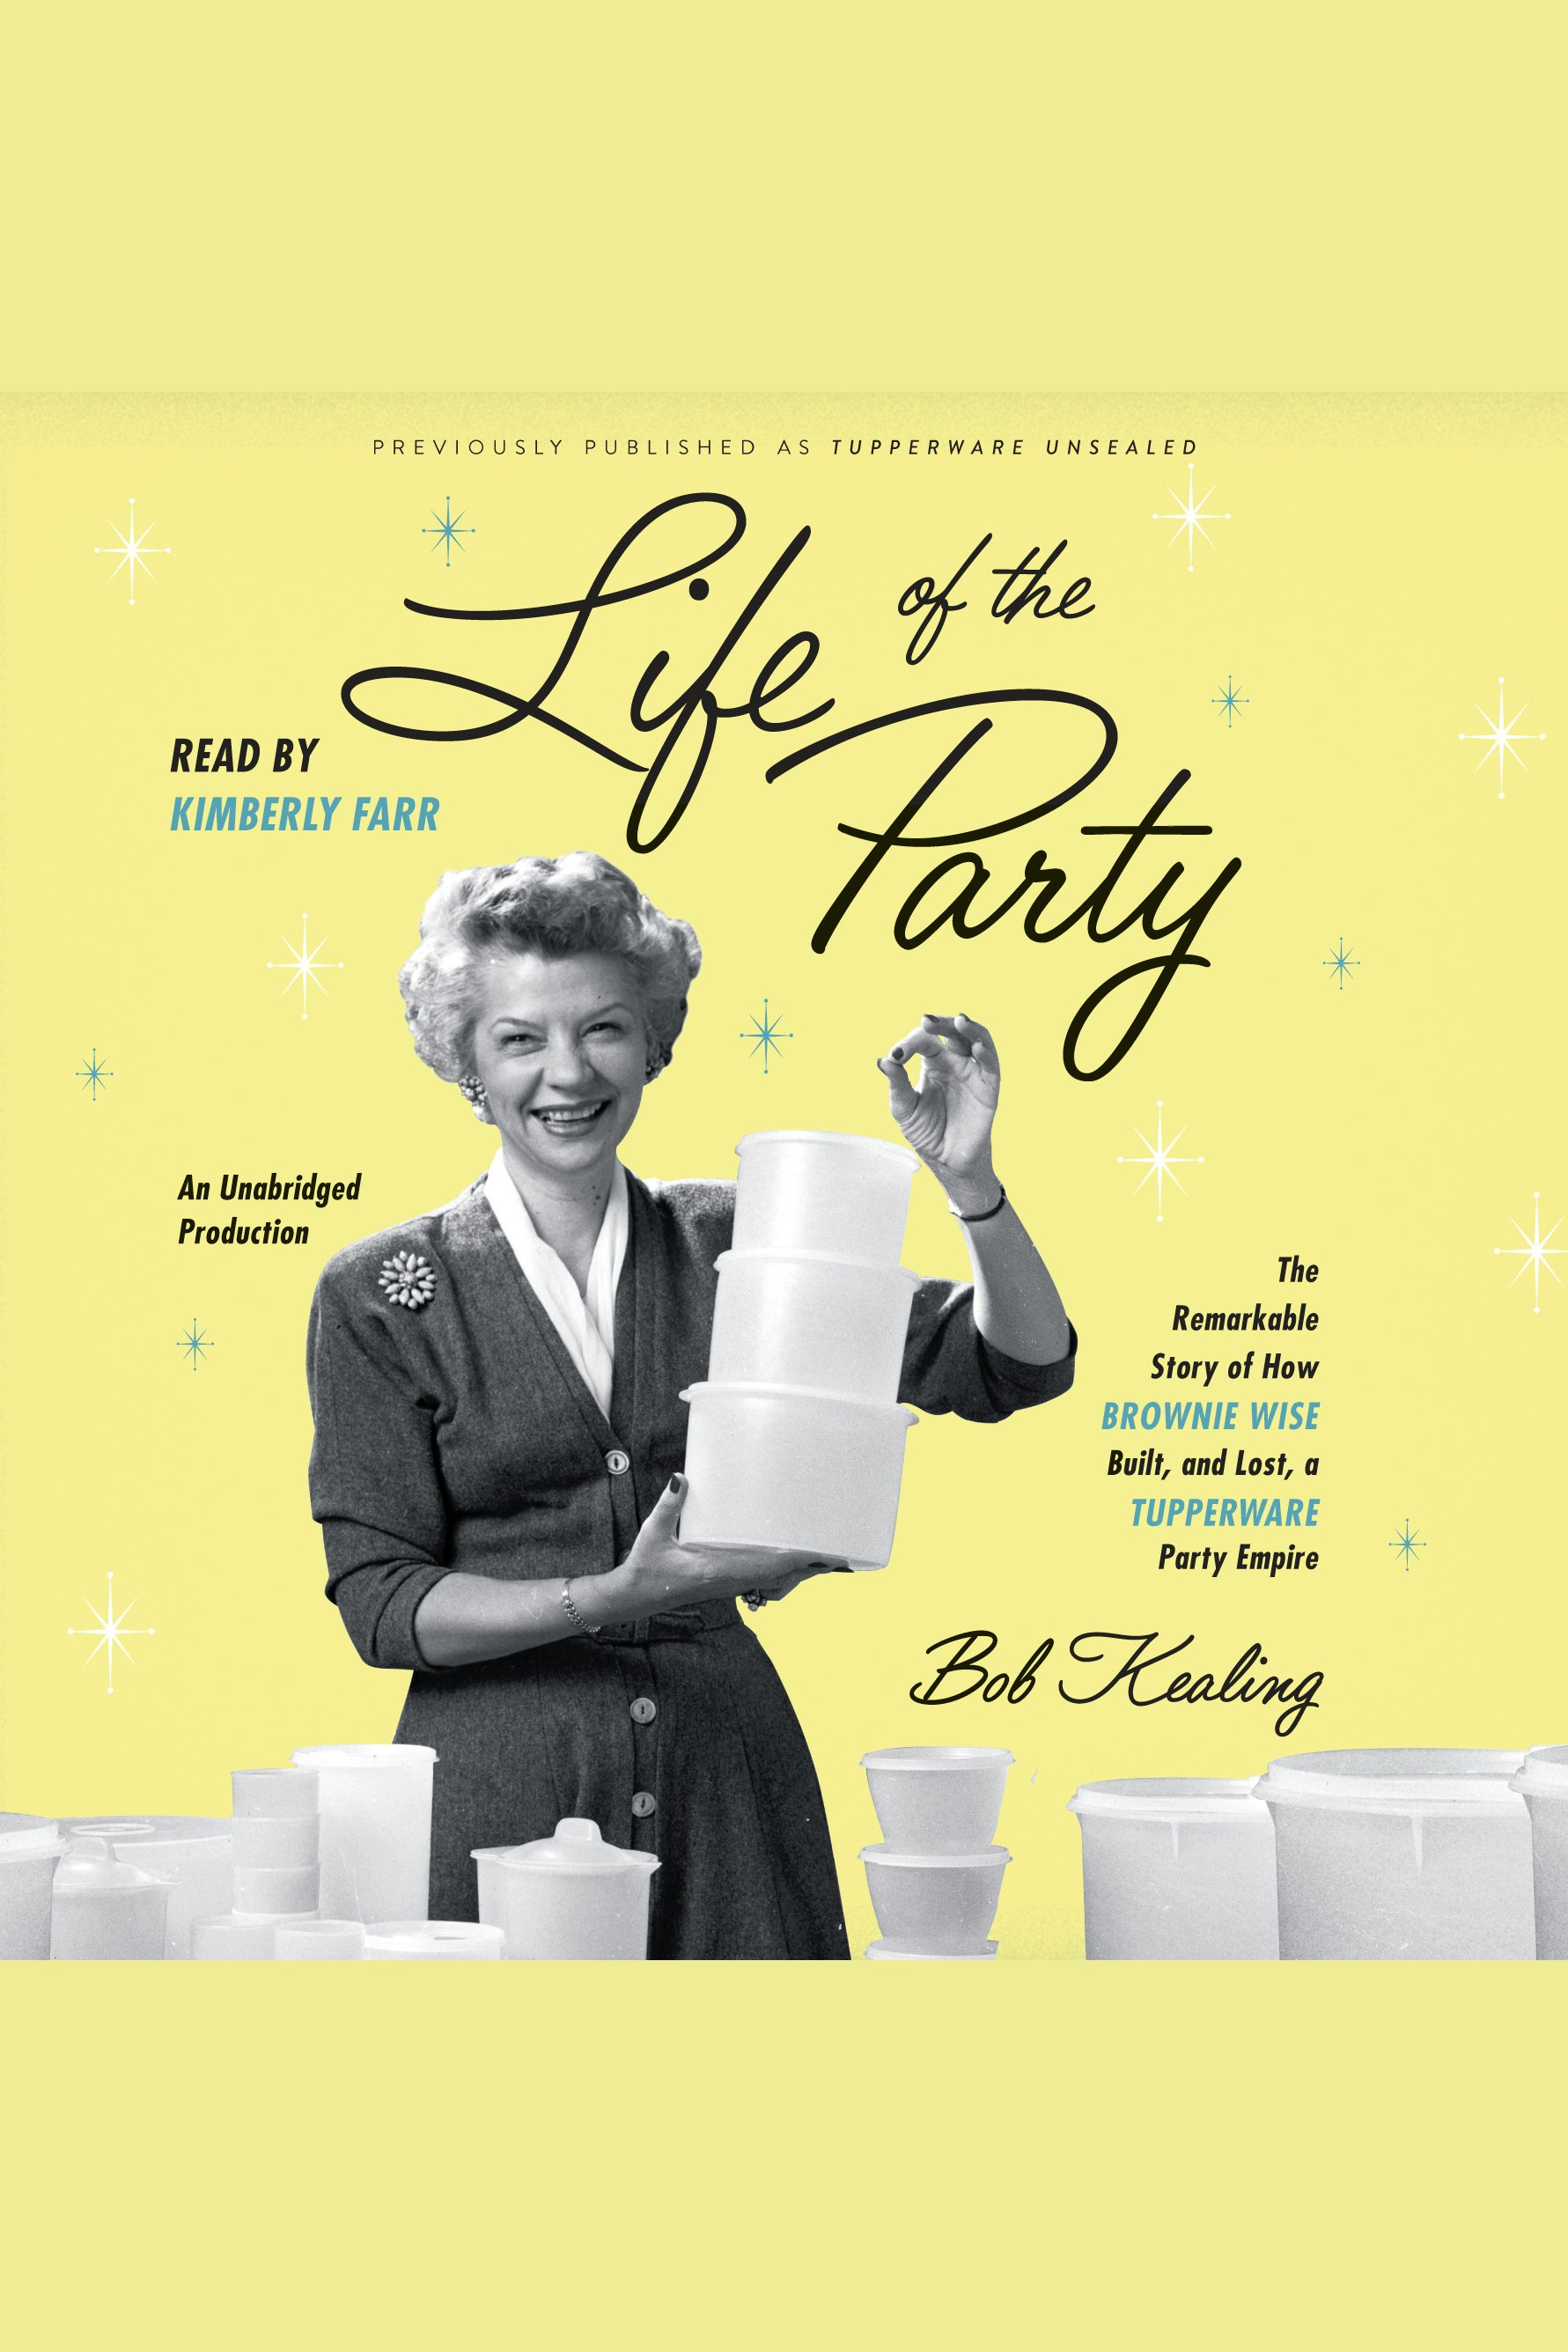 Life of the Party The Remarkable Story of How Brownie Wise Built, and Lost, a Tupperware Party Empire